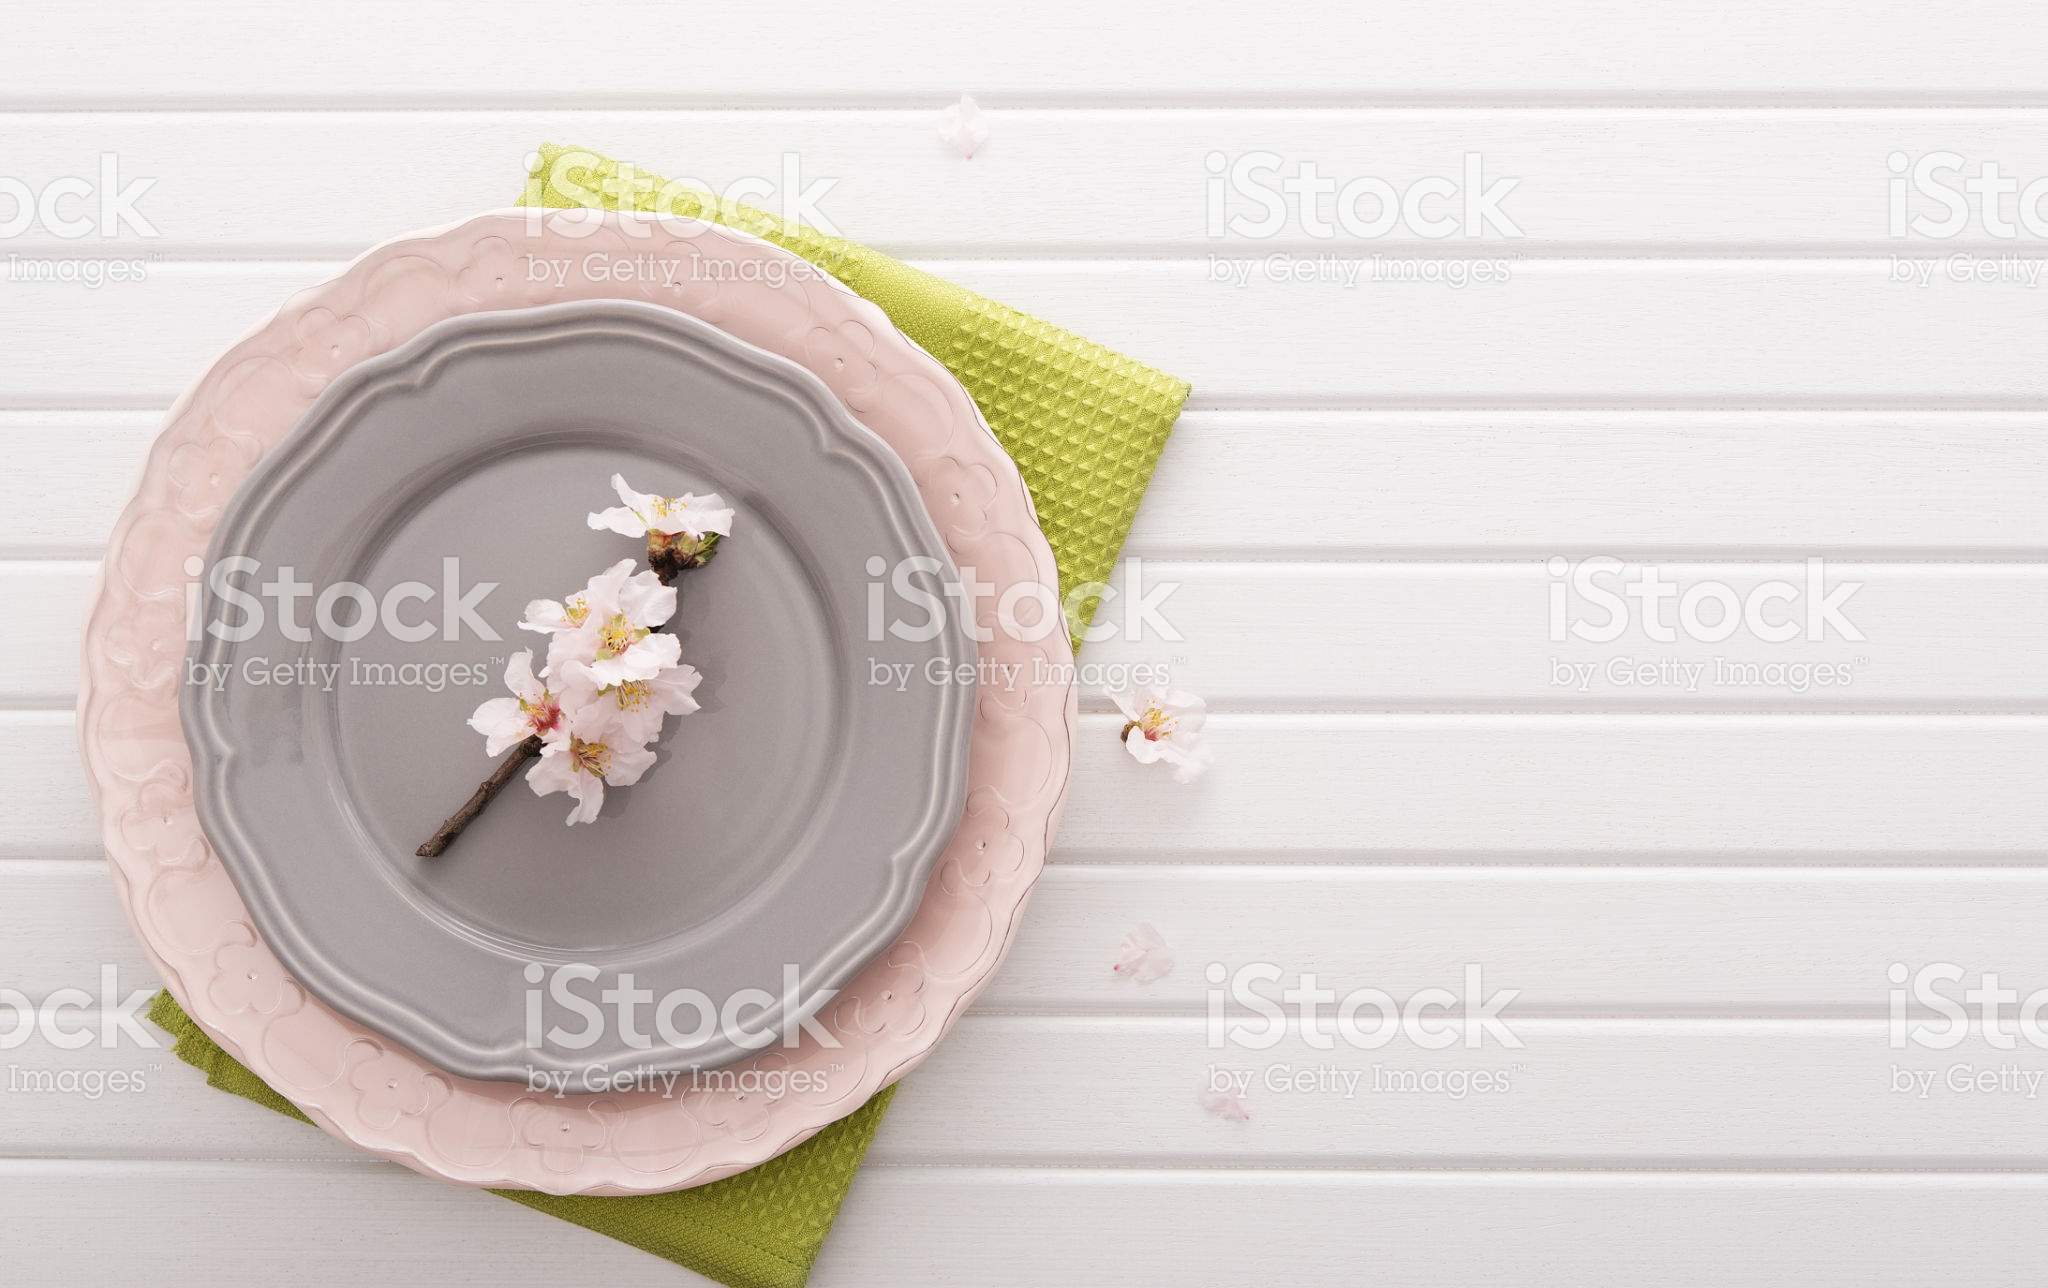 Top view on table with plates and flowers